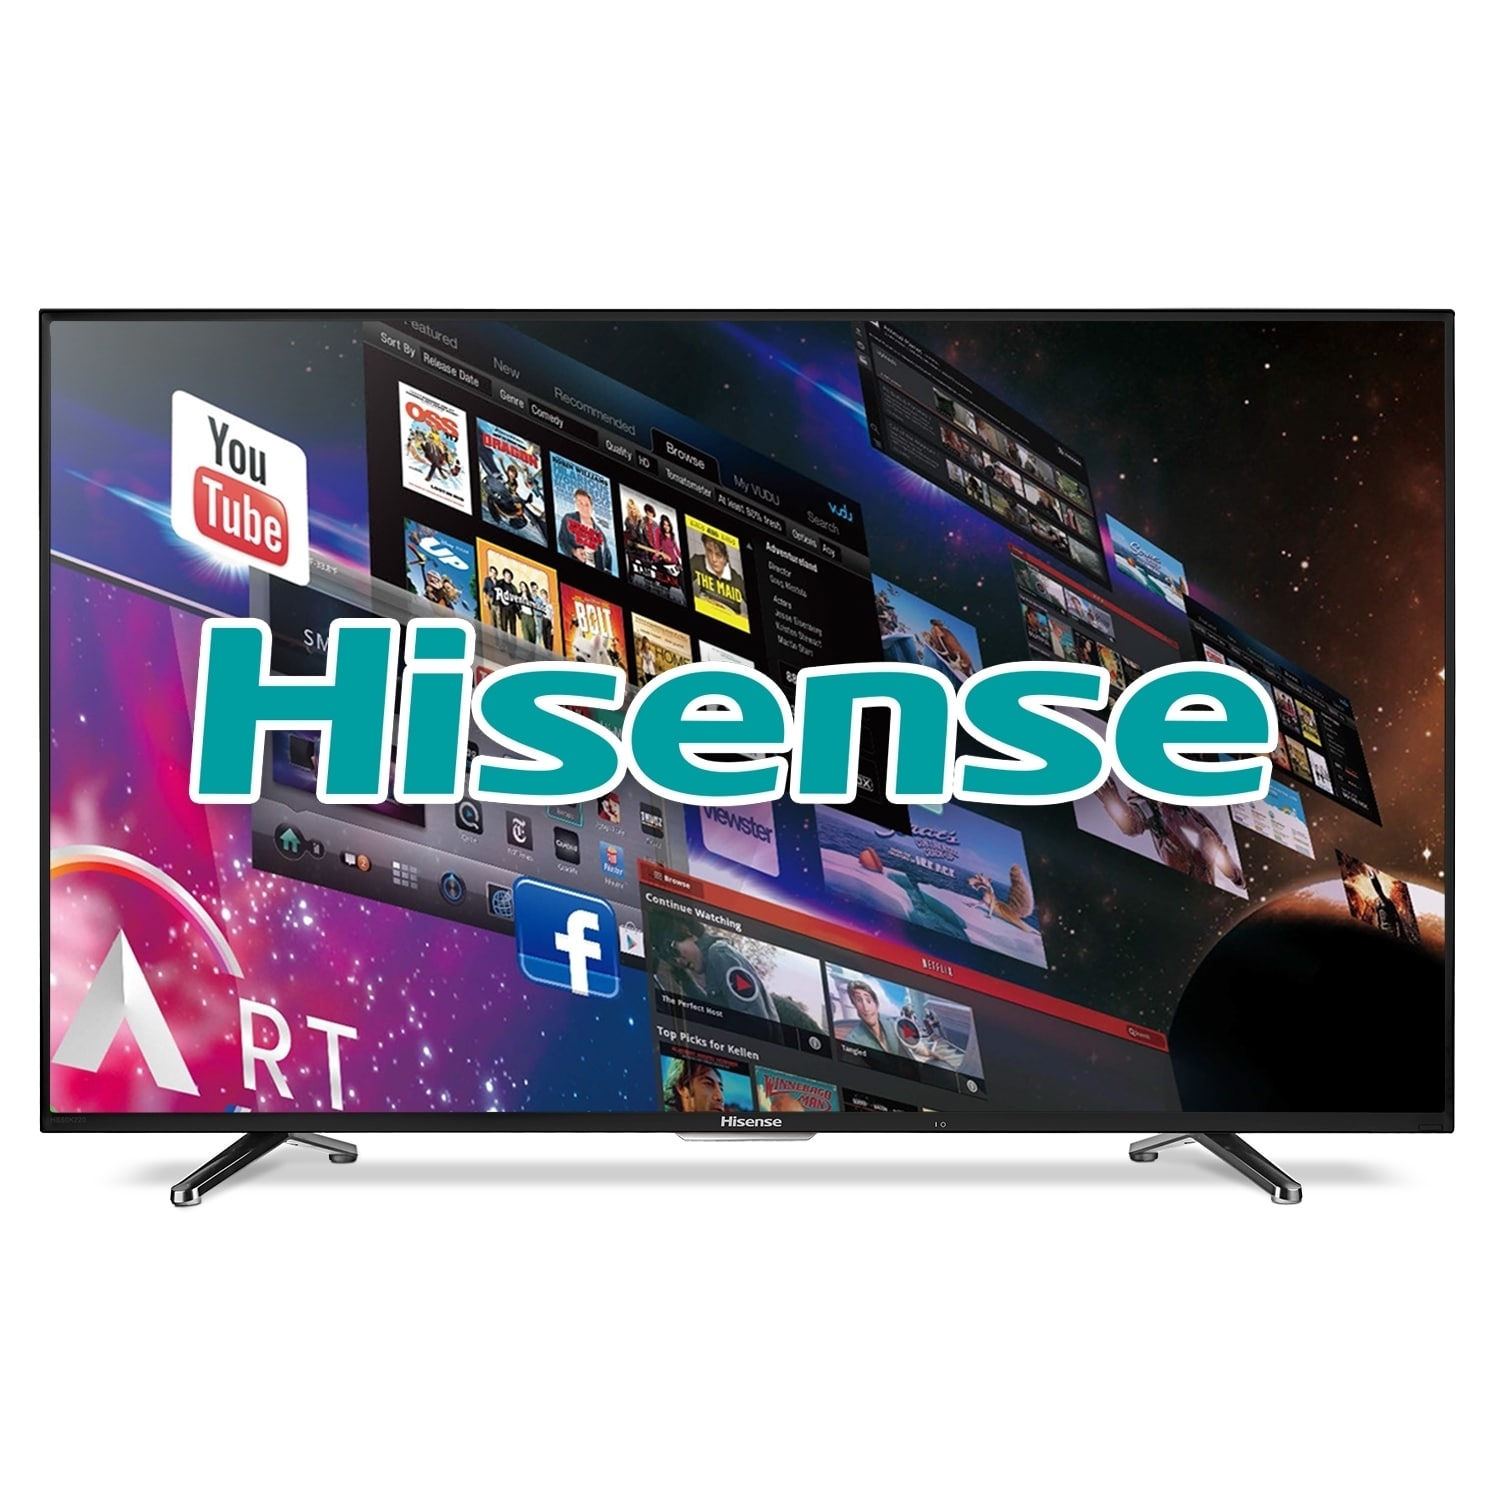 hight resolution of shop hisense 40h5b 40 inch 1080p 60hz smart wi fi led hdtv refurbished as is item free shipping today overstock com 13893427